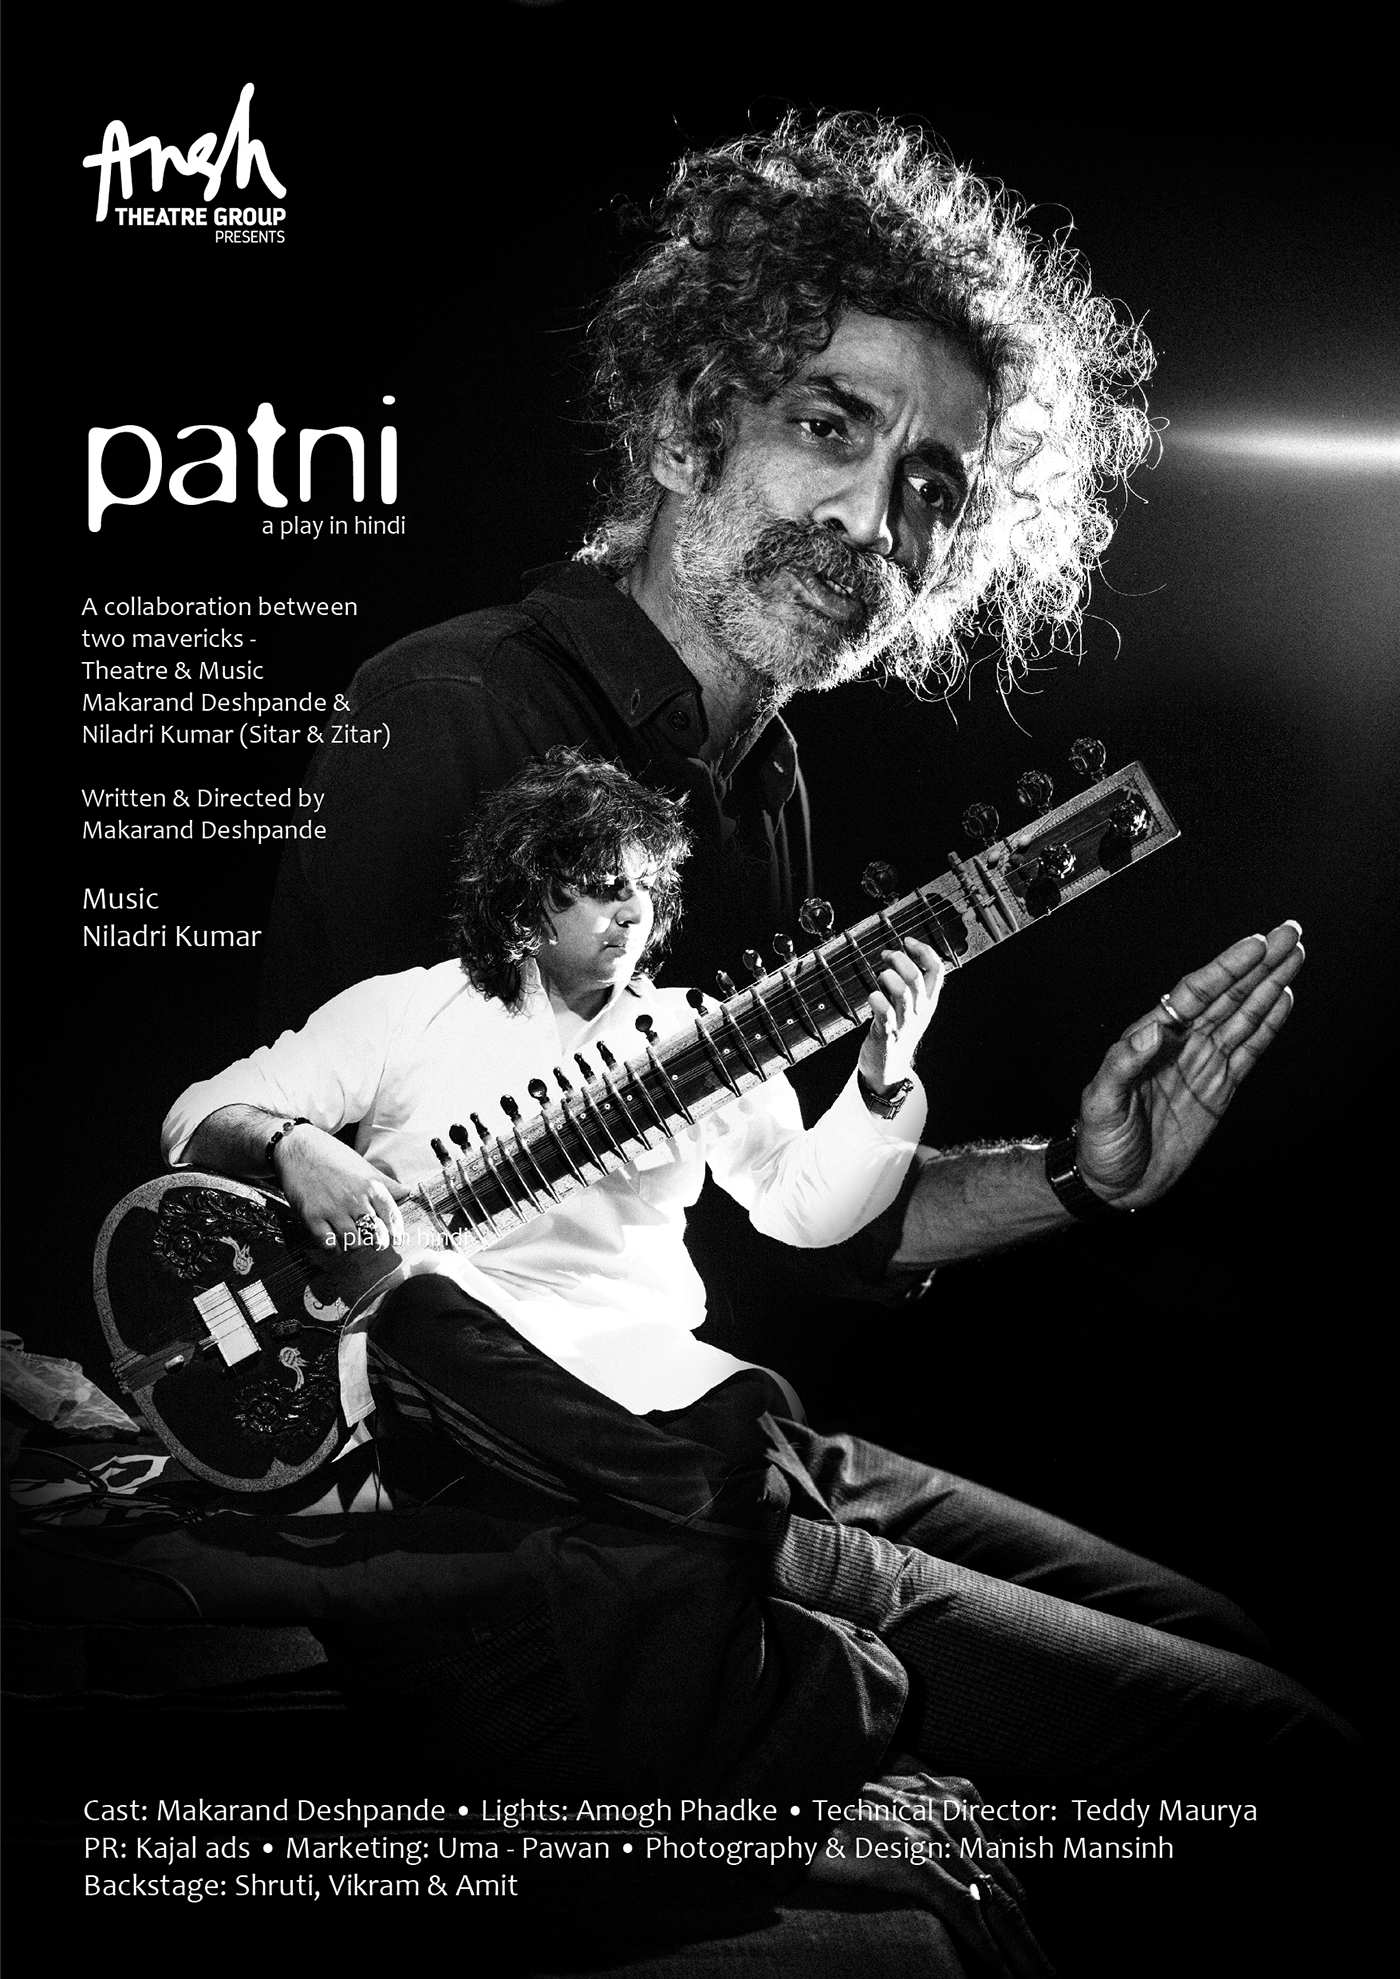 PATNI, a play in hindi on Behance